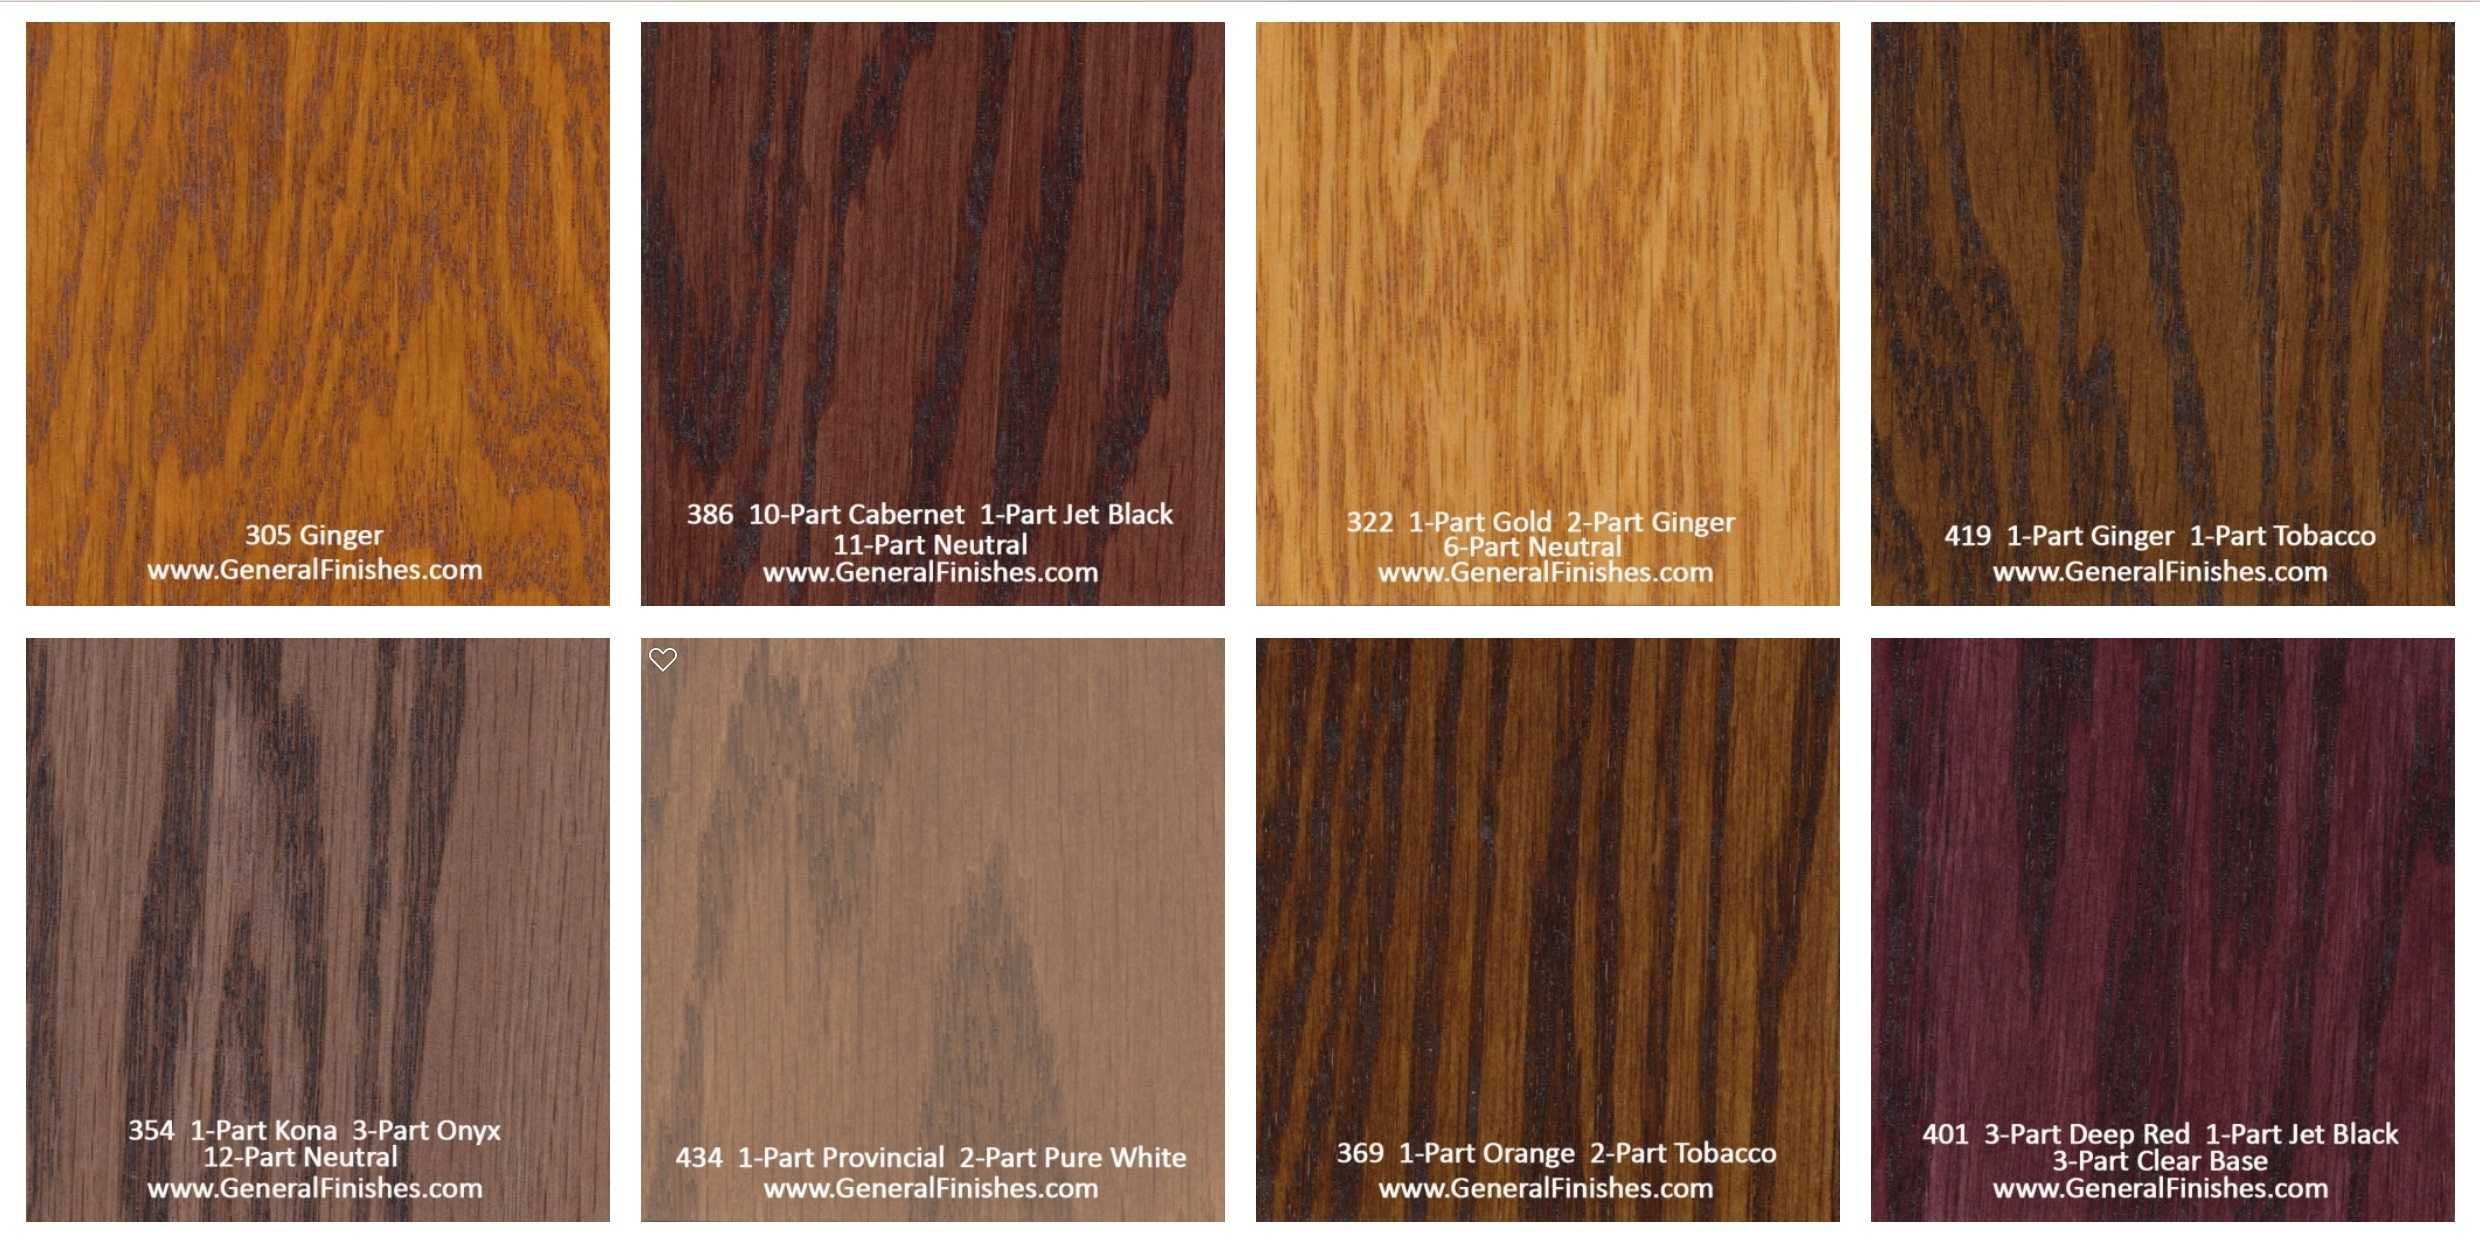 General finishes pro floor stain color swatch chart for for Hardwood floor colors